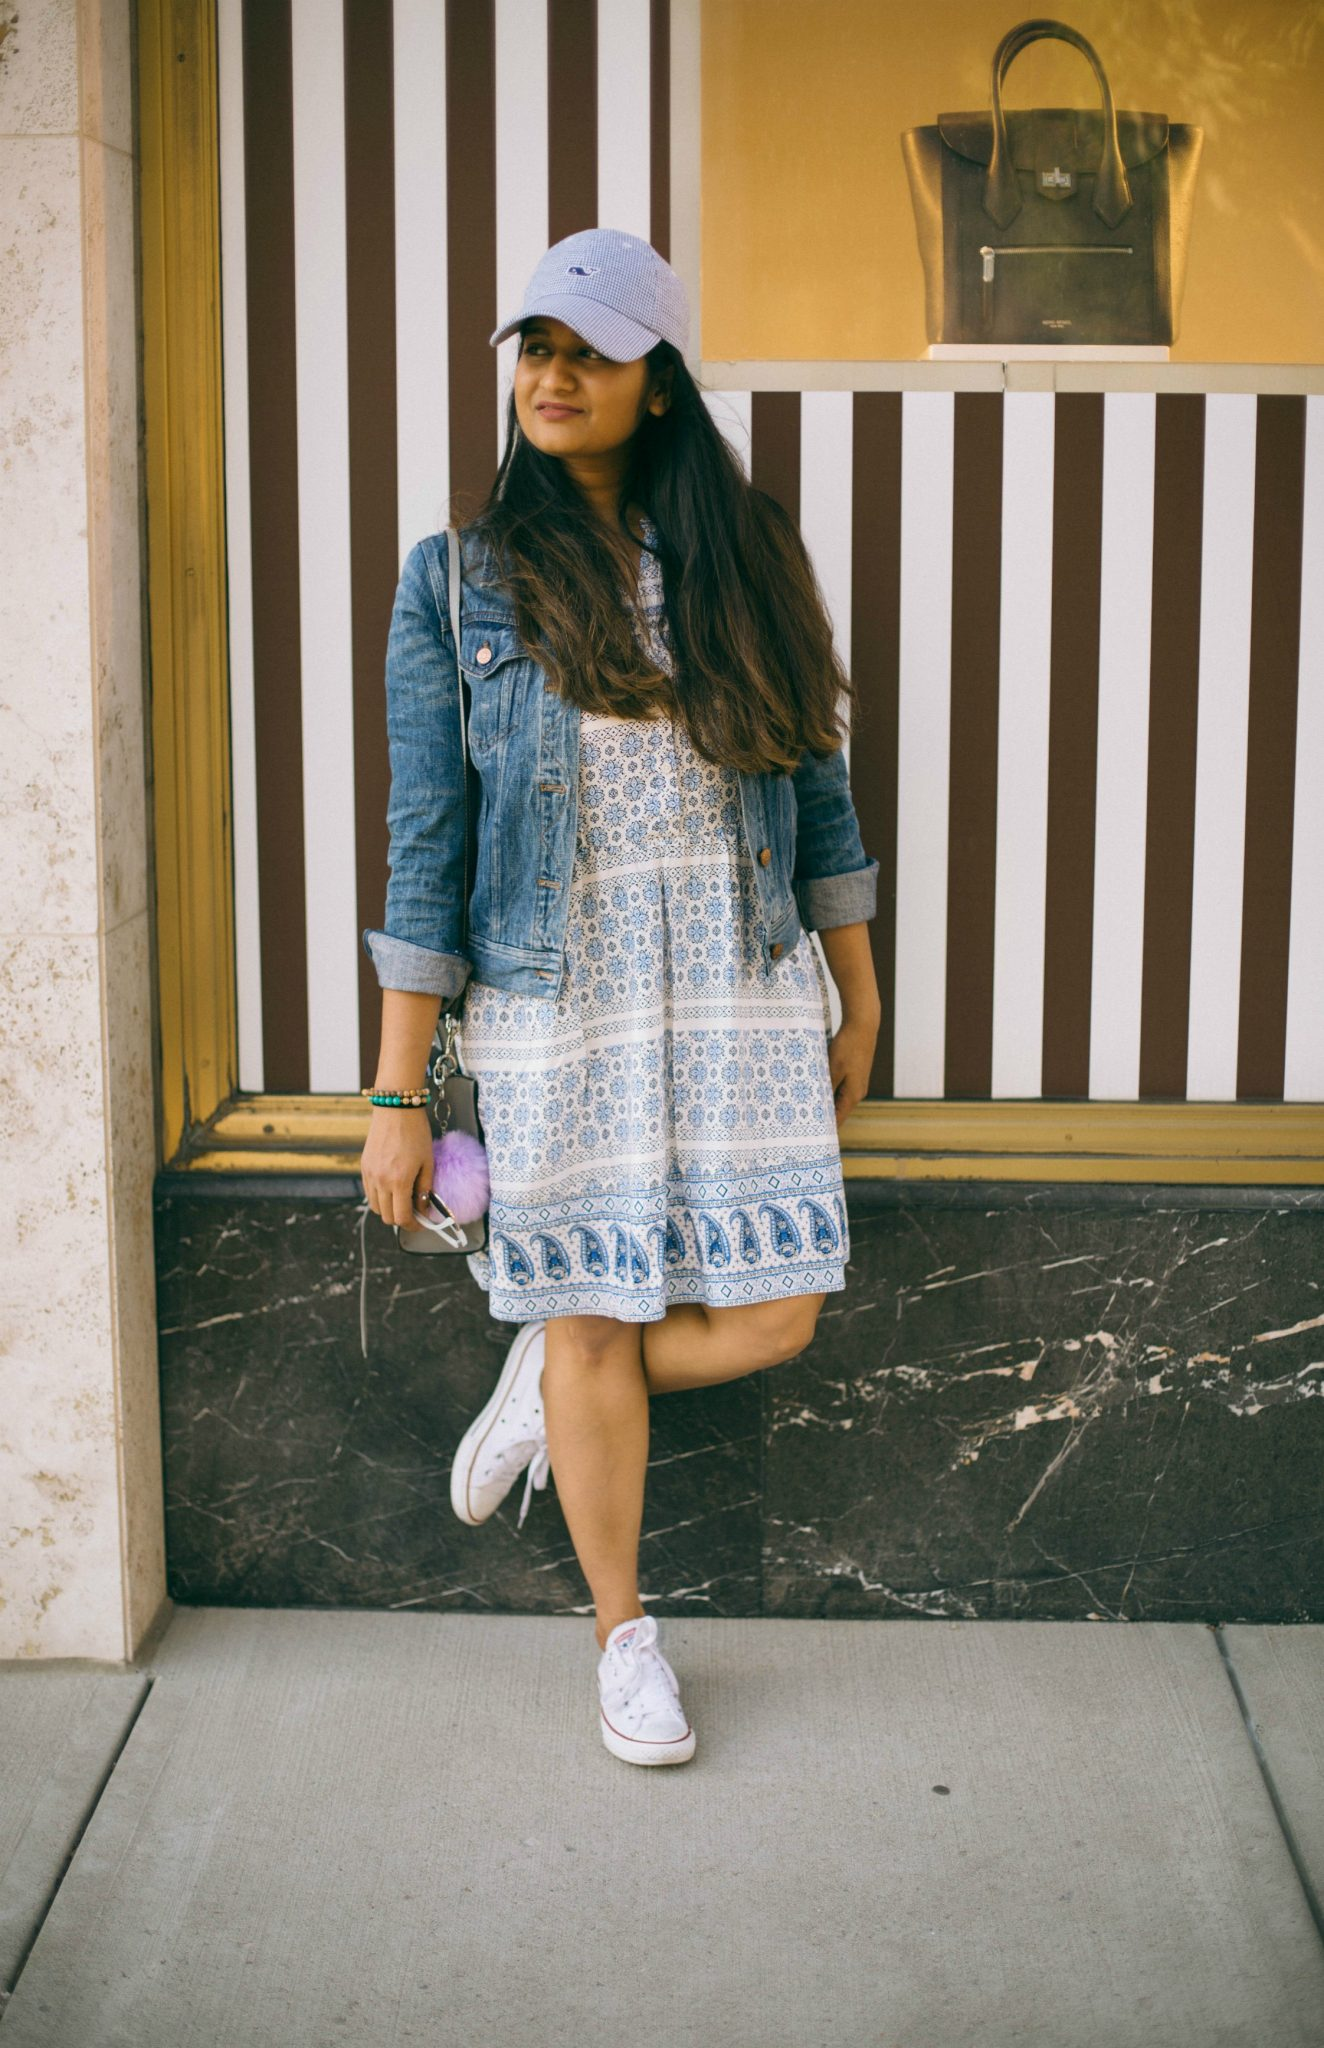 5-chic-and-affordable-back-to-school-outfits-for-college-students - Back To School Outfits For College Students featured by Ohio modest fashion blogger, Dreaming Loud